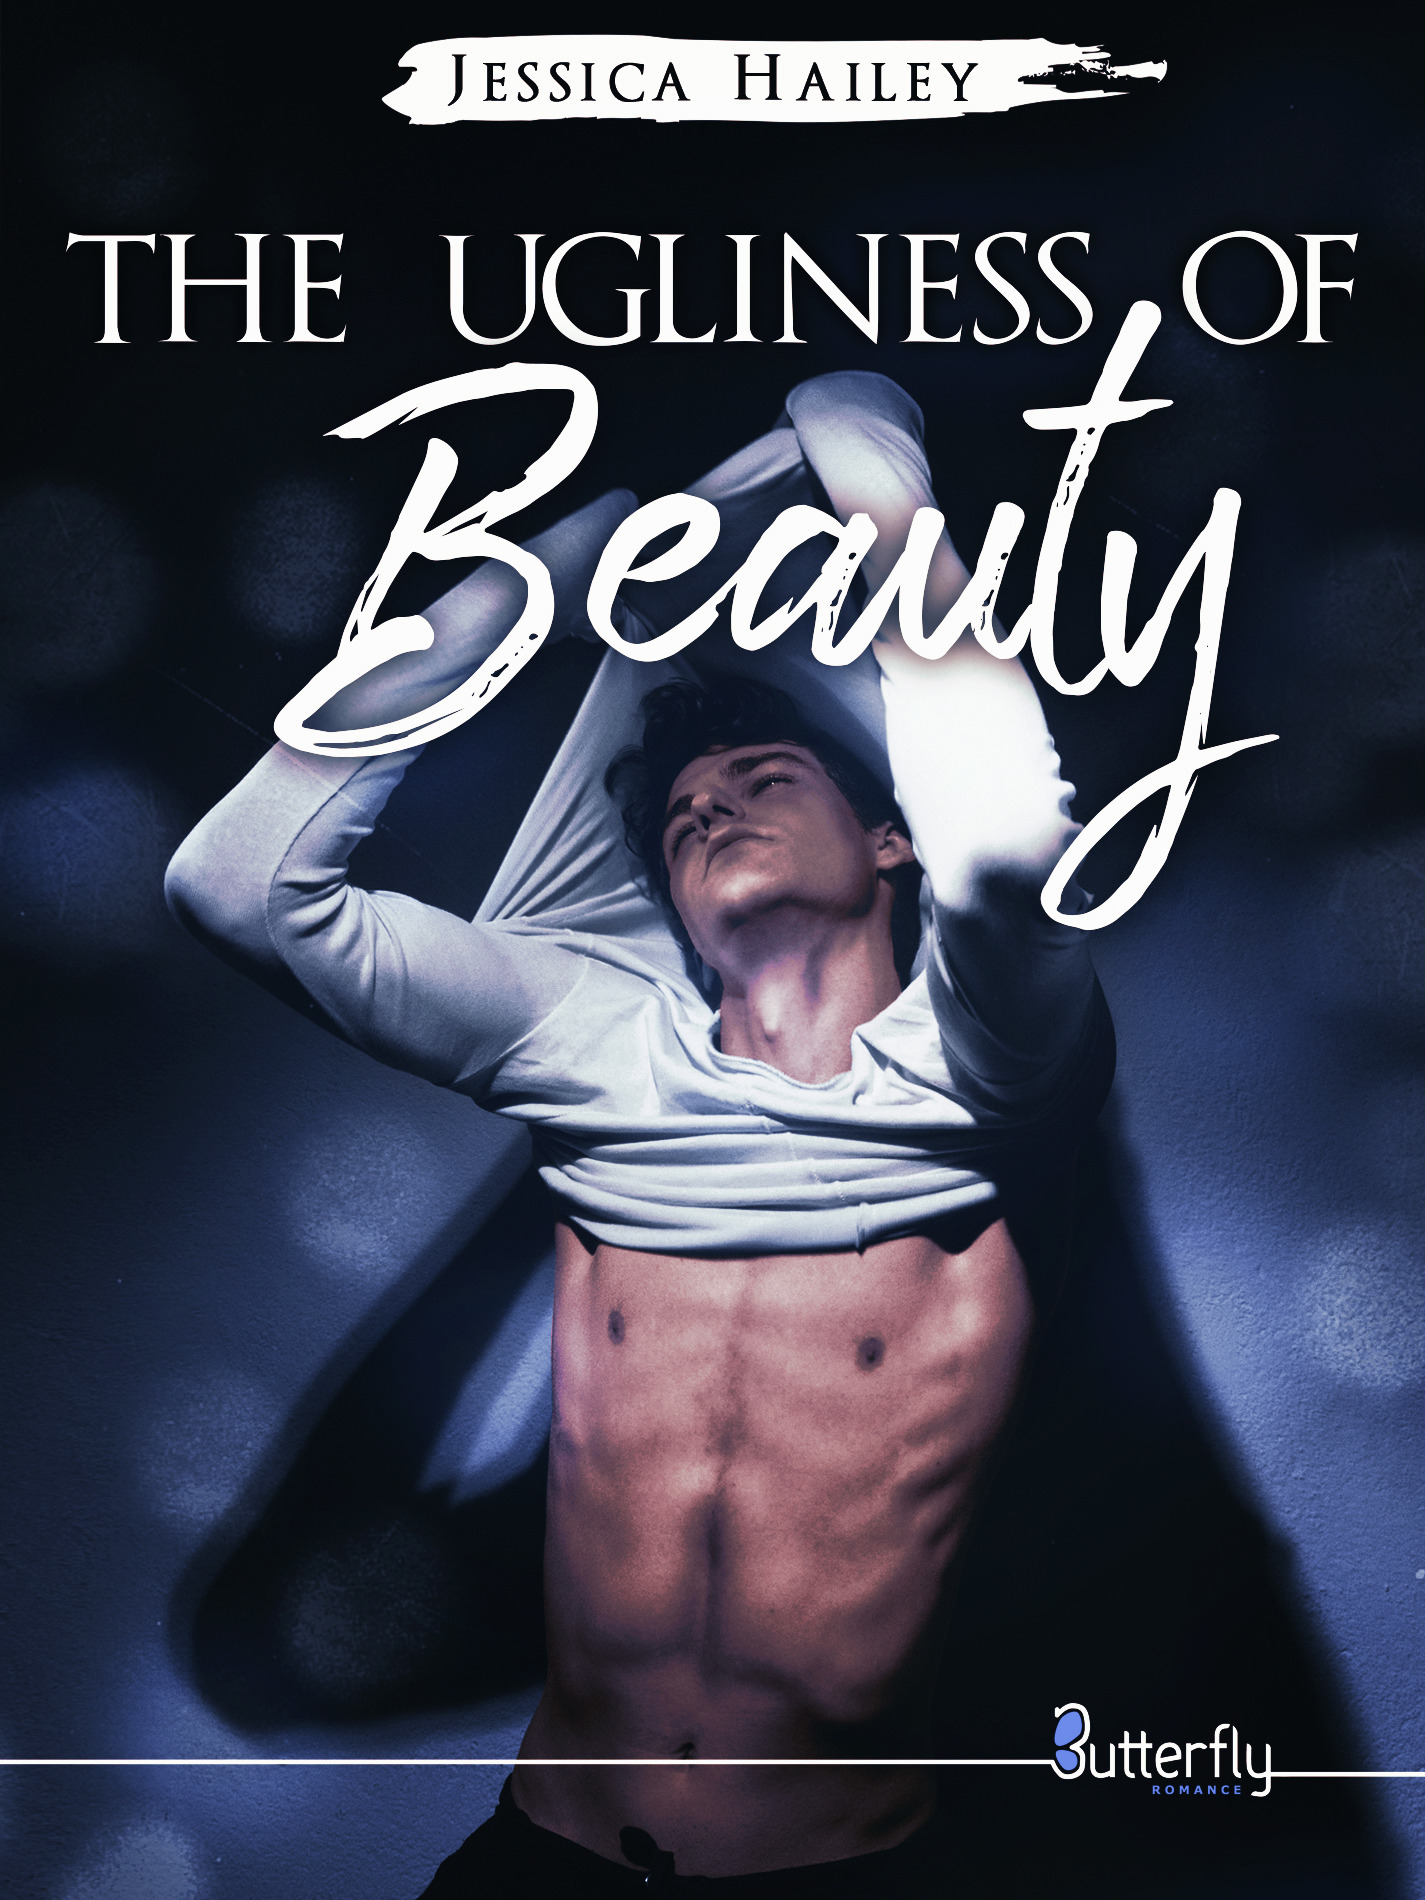 The Ugliness of Beauty (Teaser)  - Jessica Hailey